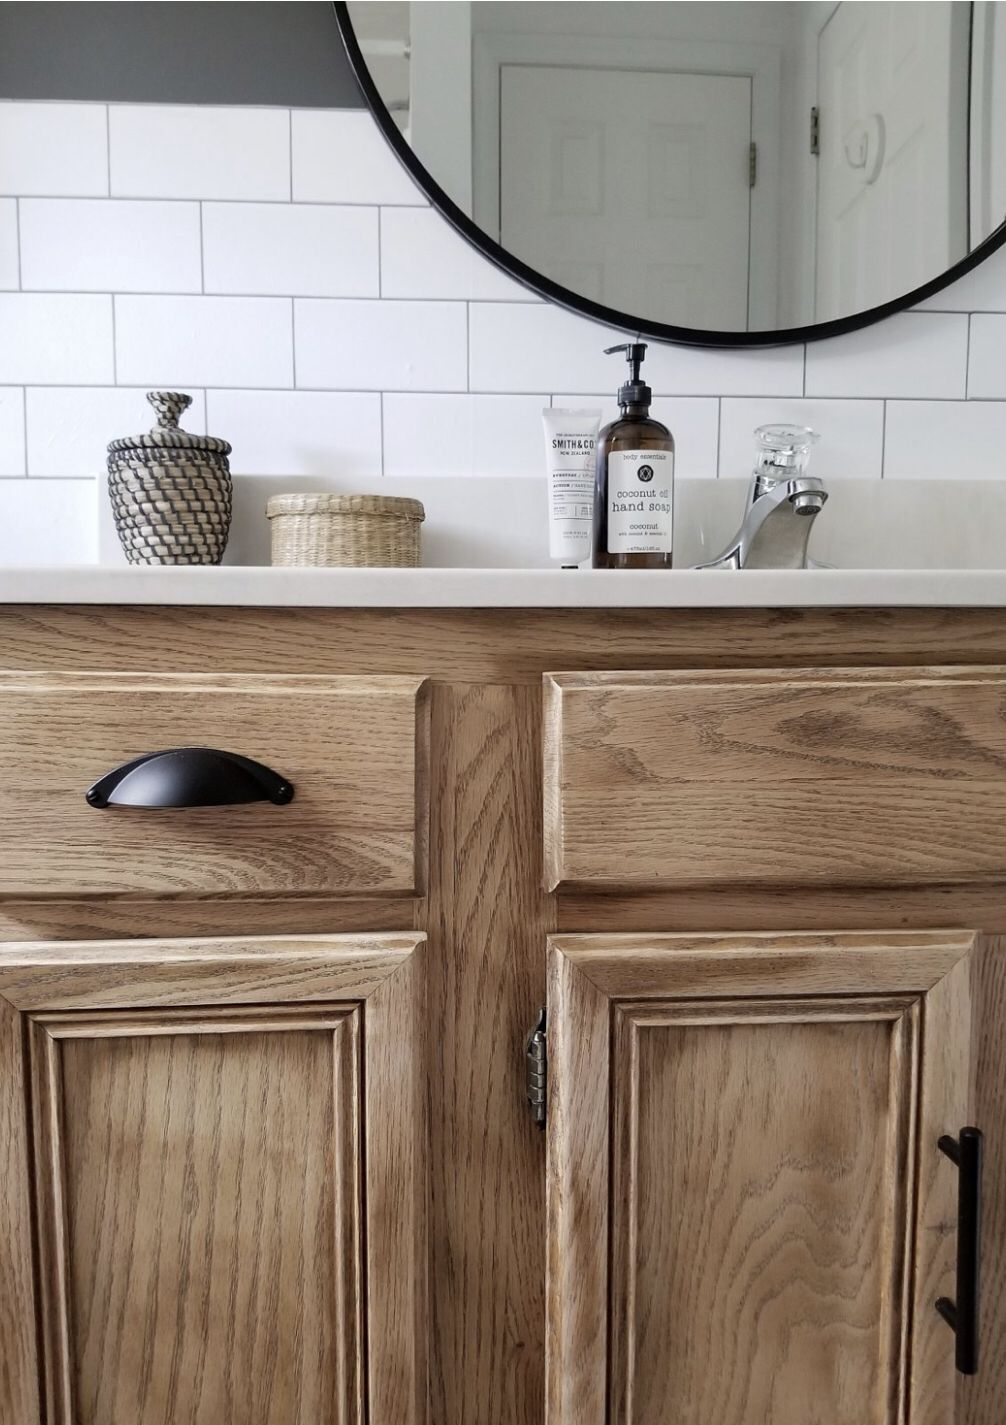 Grab your sander and get to it! The yellow aged finishing on the vanity had to go. I simply sanded the old finish off, applied a matte sealer and changed out the hardware #repurosed #bathroomvanity